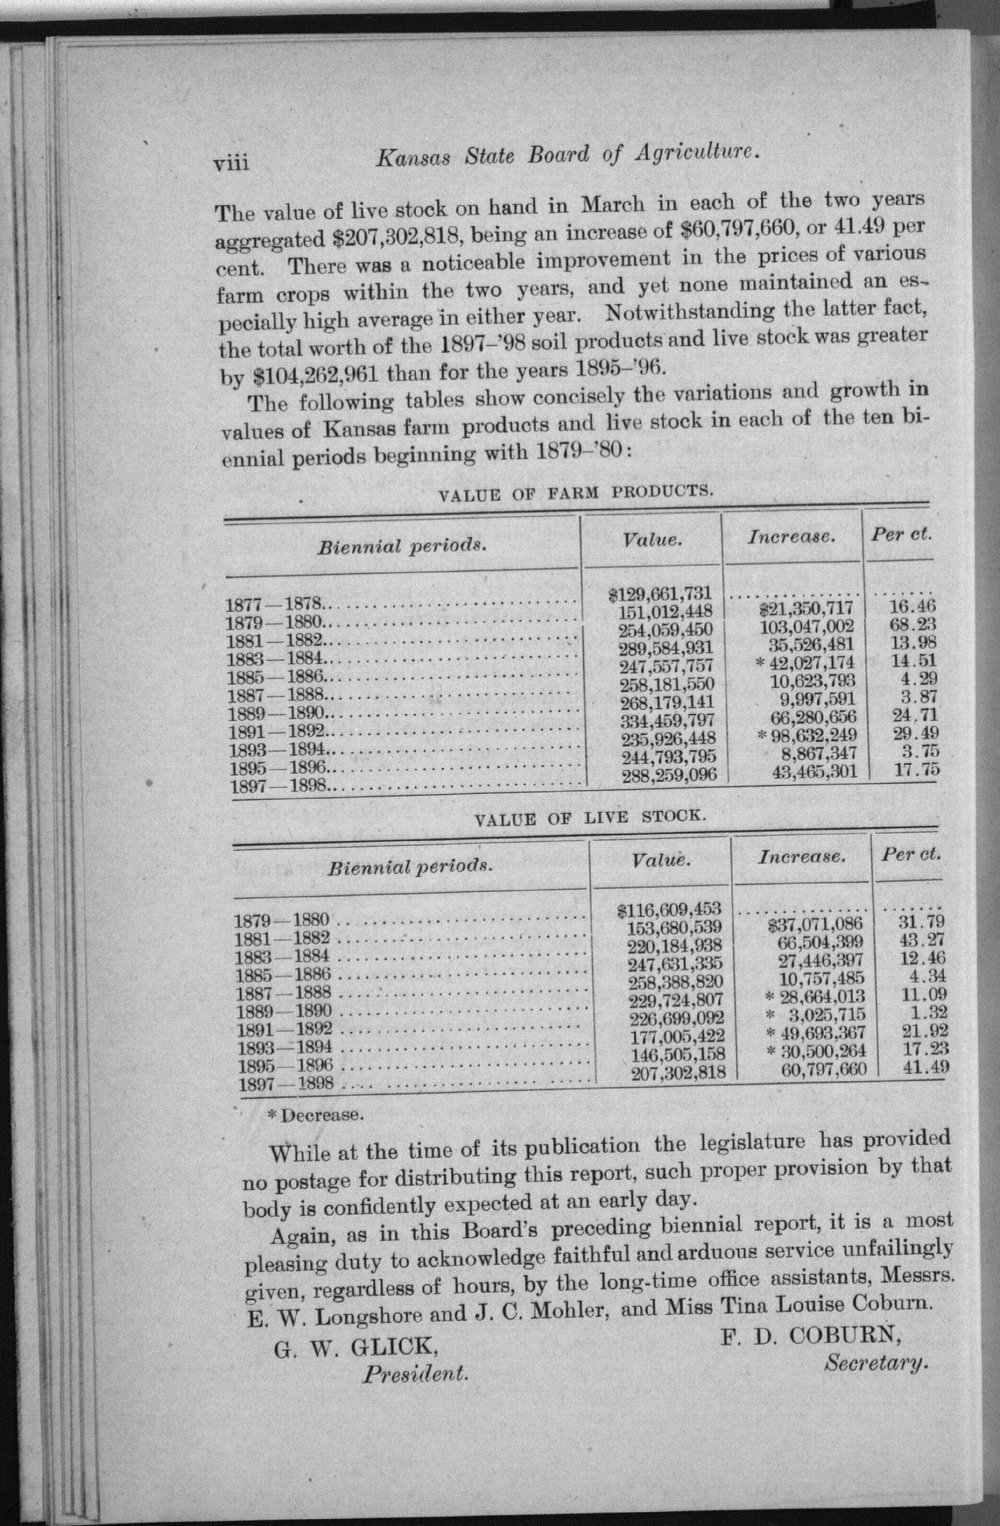 Eleventh biennial report of the Kansas State Board of Agriculture, 1897-98 - viii